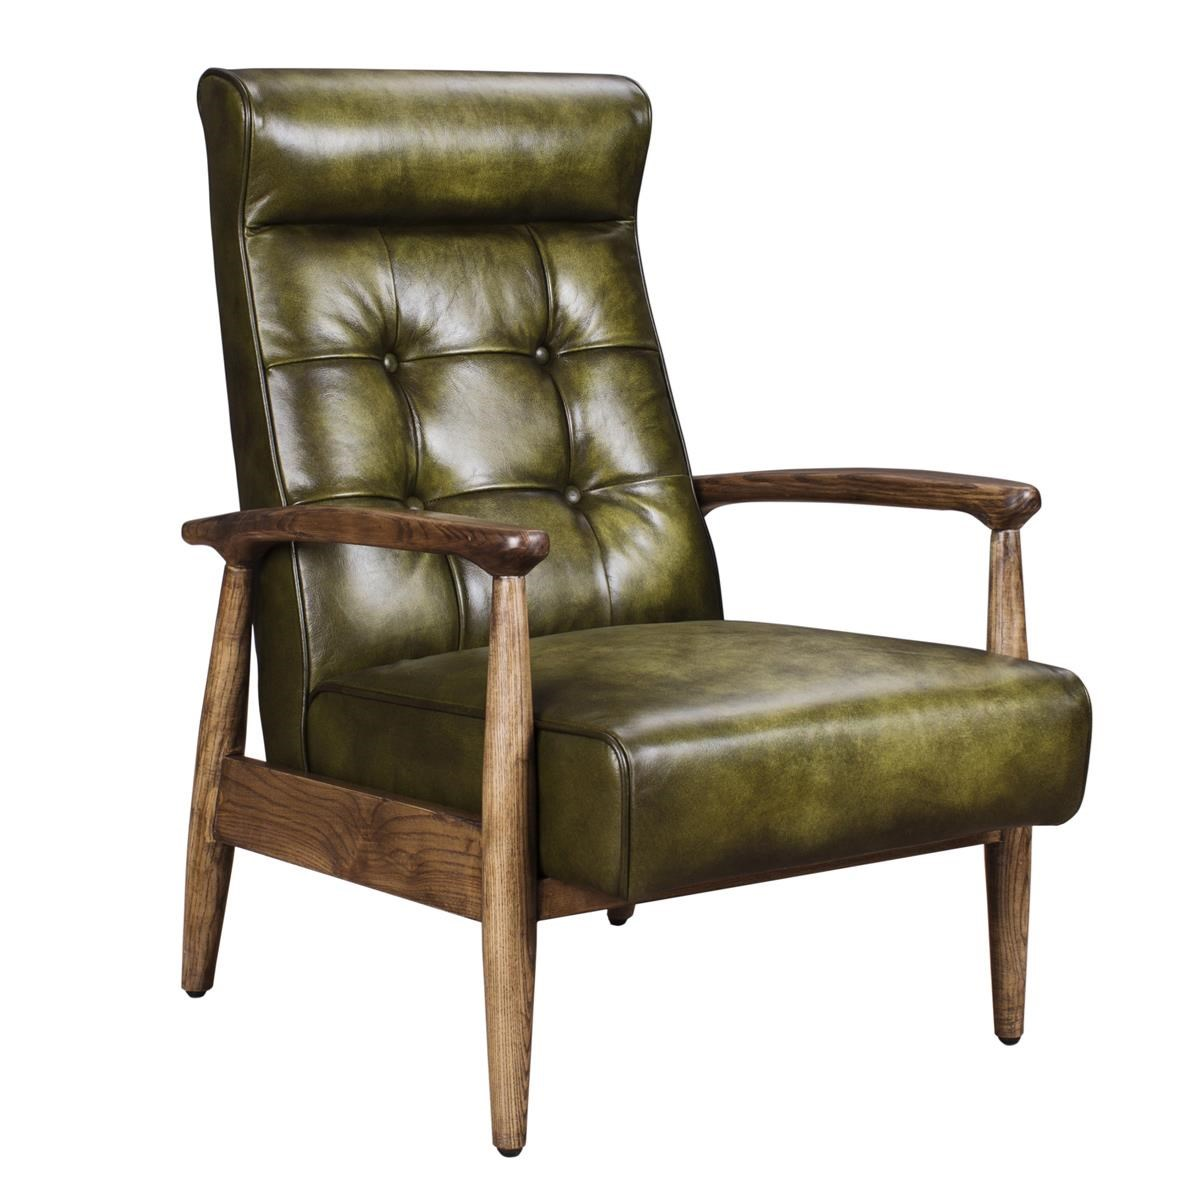 Classic Home Murphy Green Club Chair - Item Number: 53004856